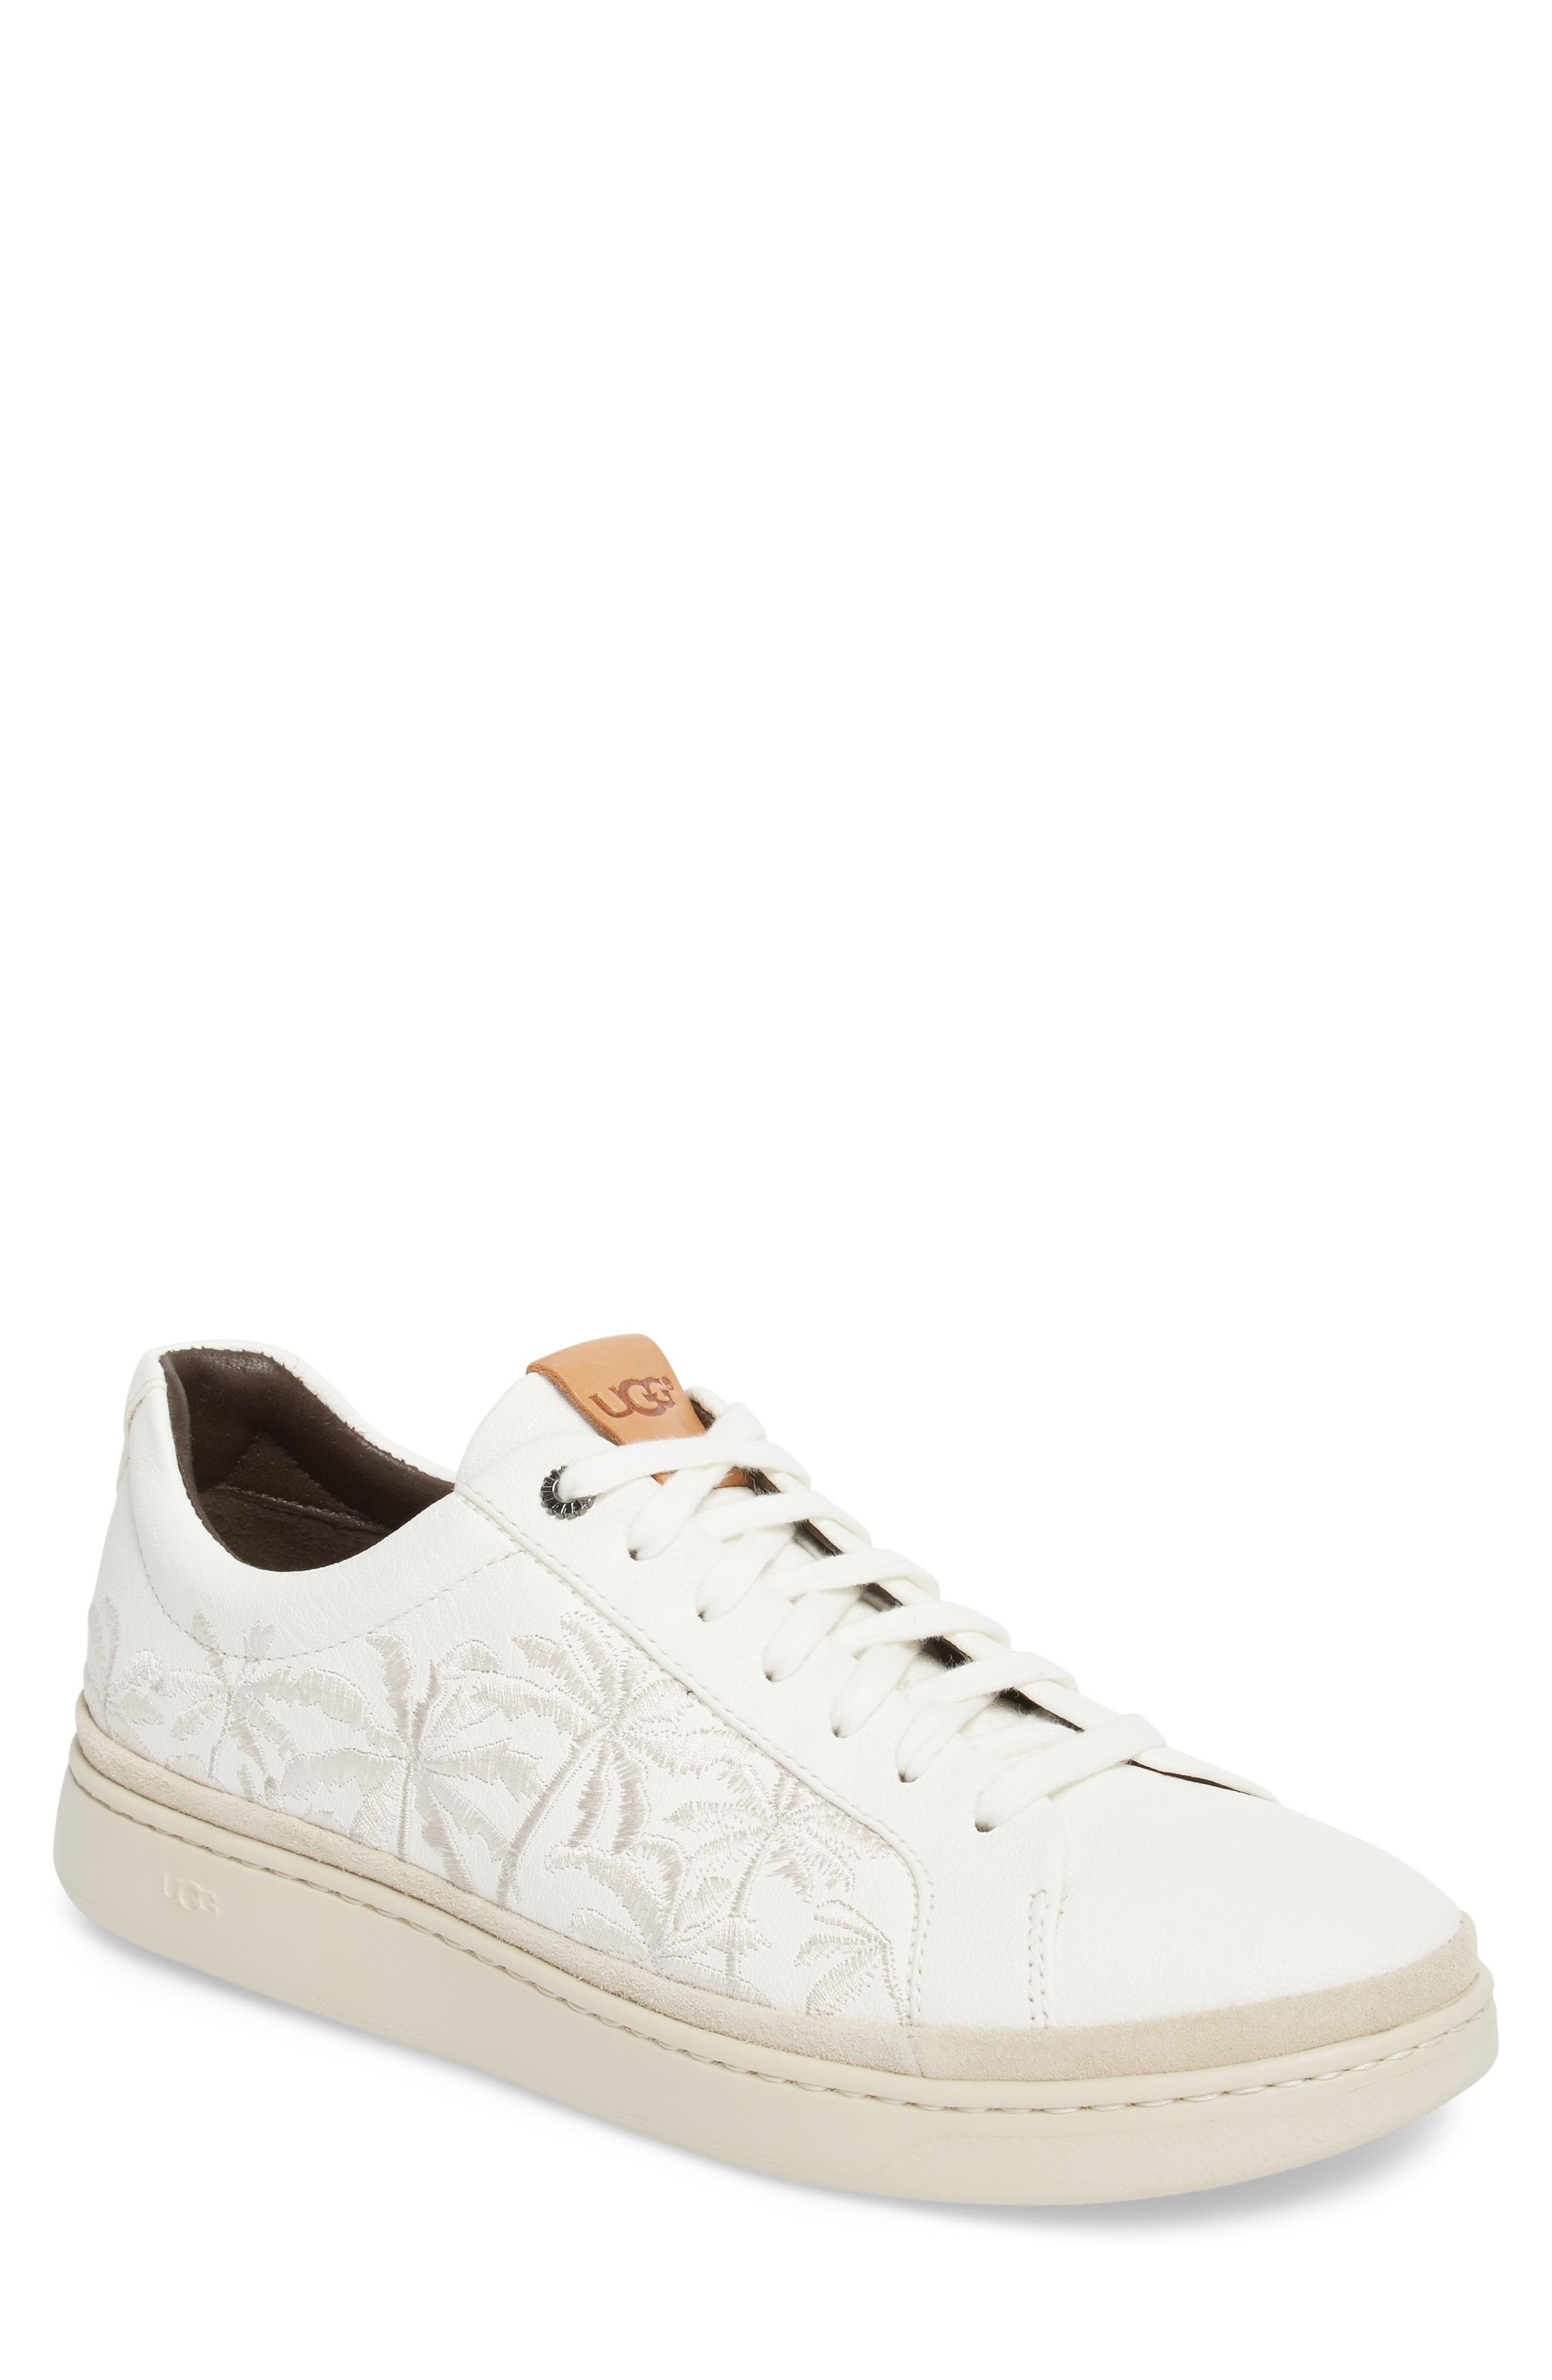 Palm Embroidered Sneaker,                             Main thumbnail 1, color,                             White Leather